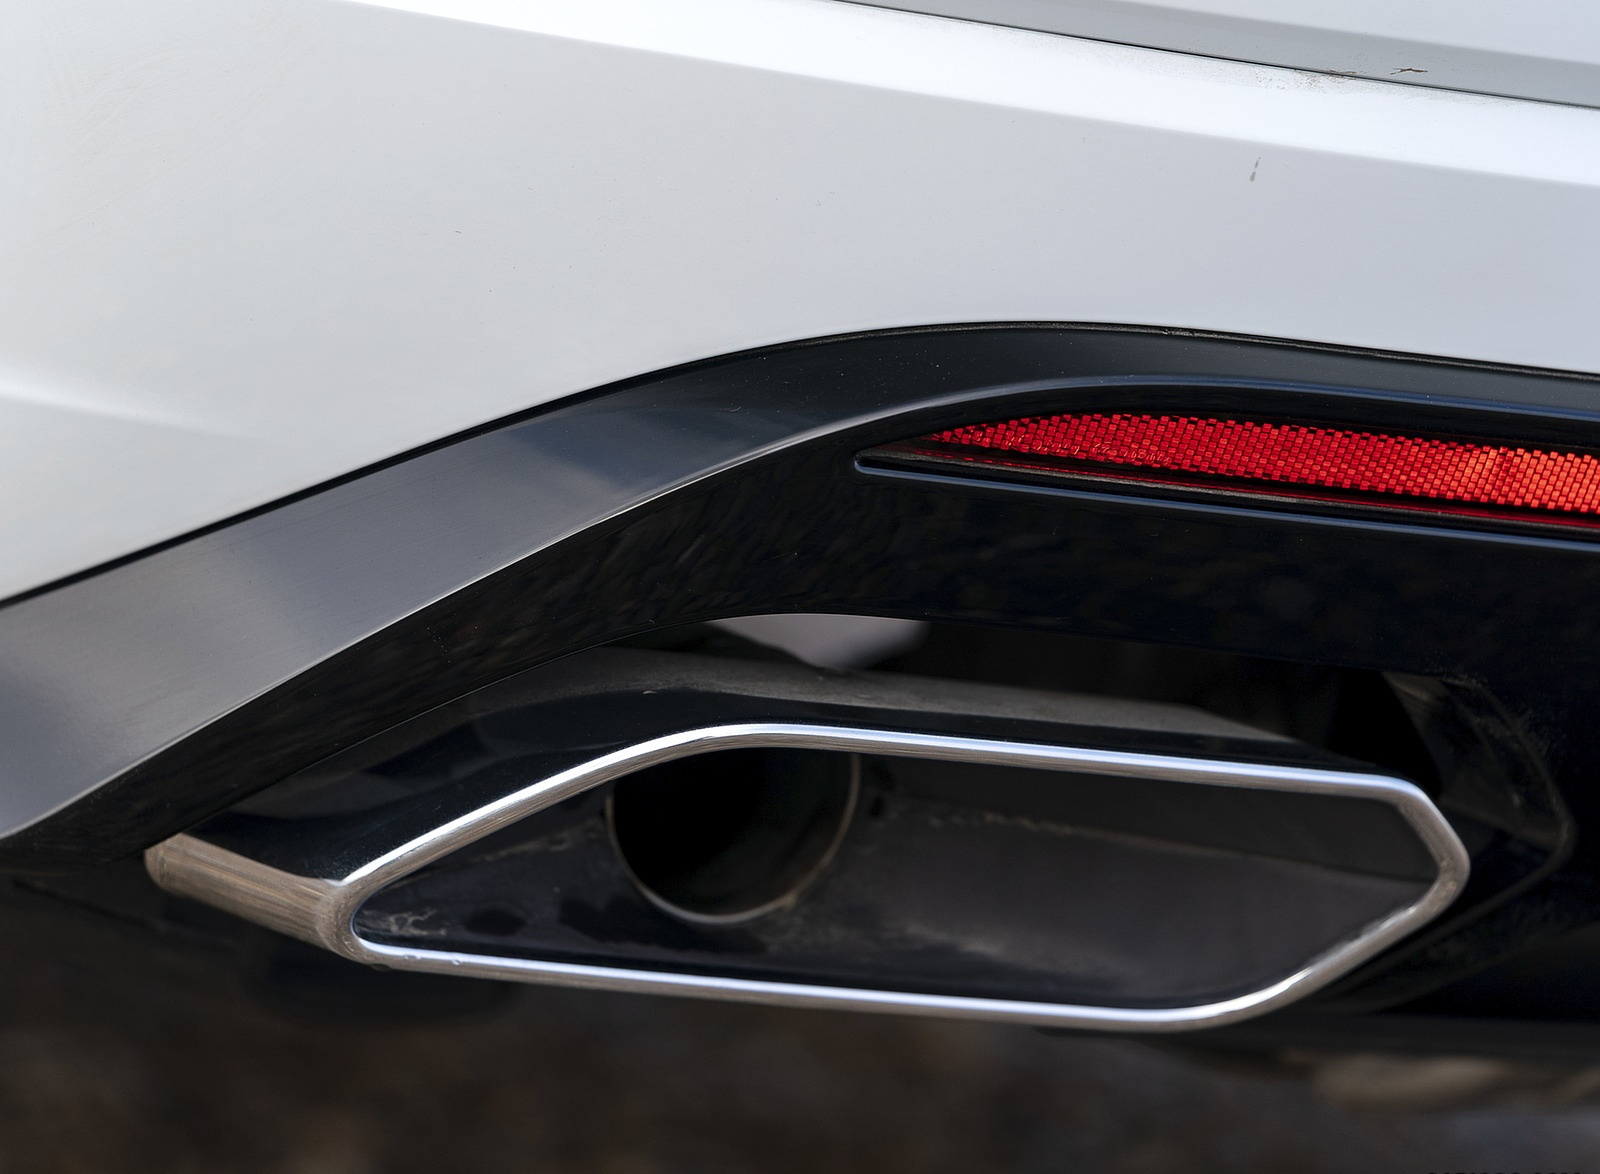 2019 Volkswagen Touareg V6 TDI R-Line (UK-Spec) Tailpipe Wallpapers #32 of 43